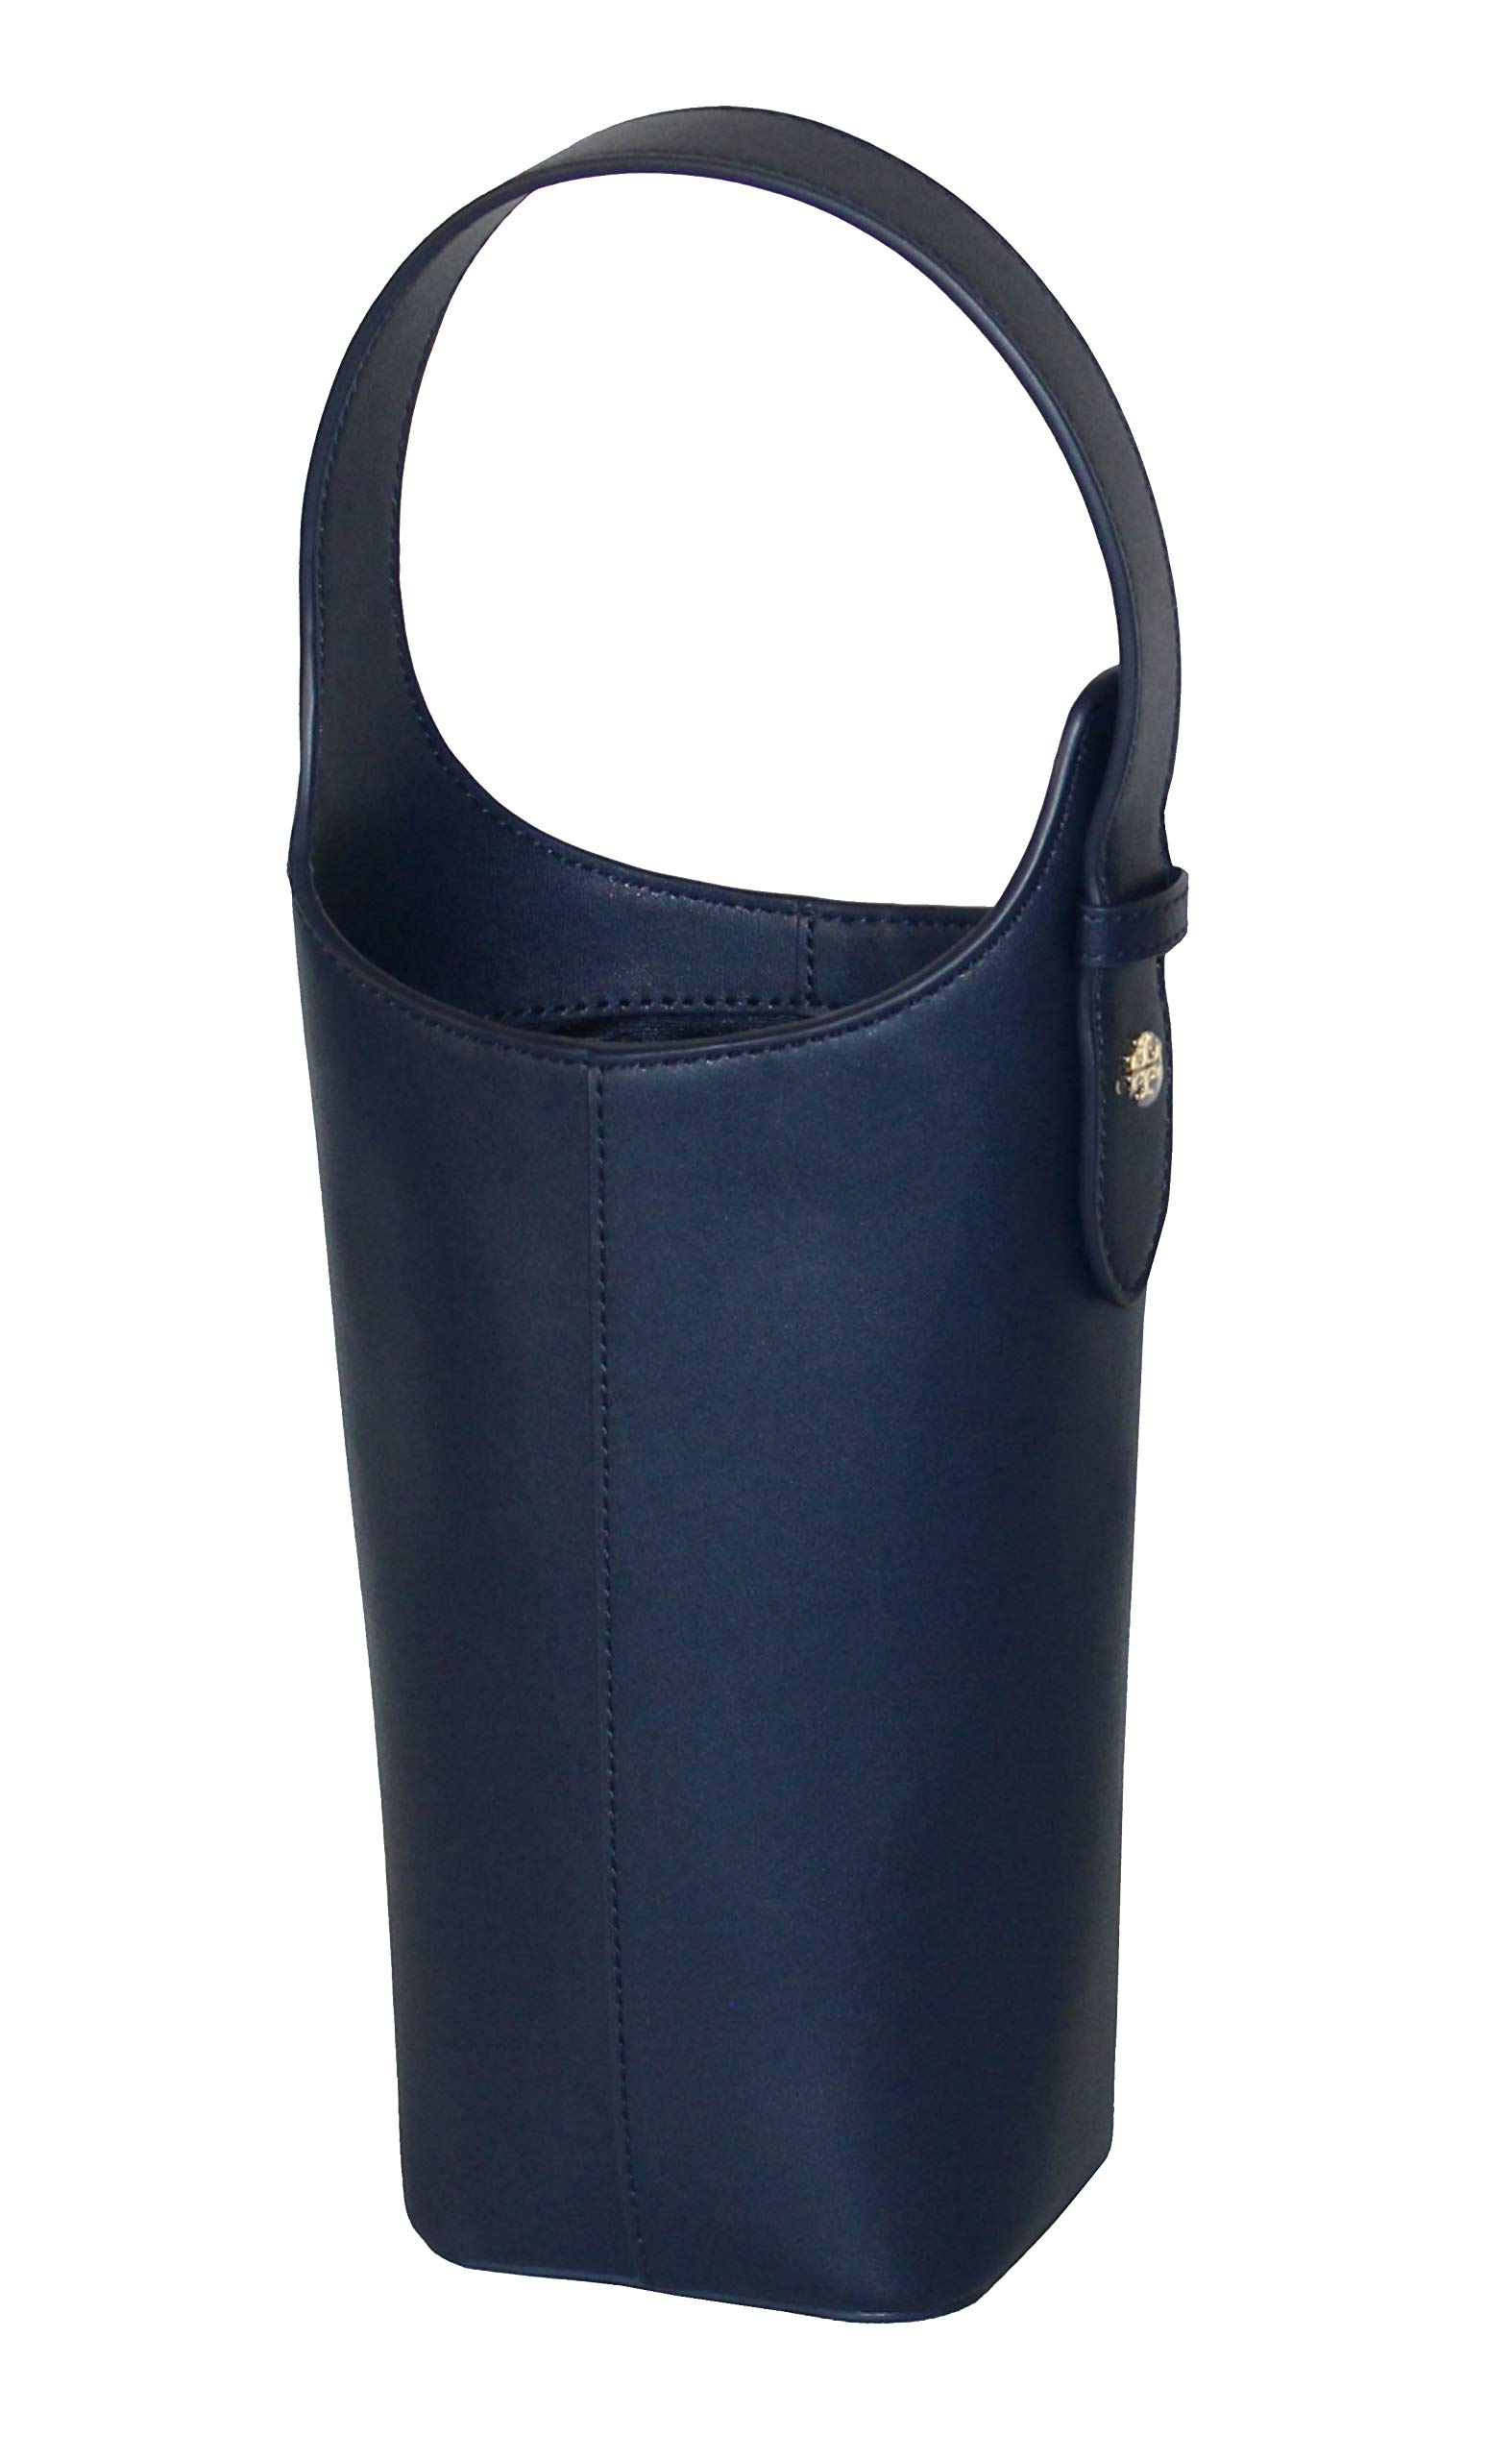 Tory Burch Leather Wine Tote Carrier Navy